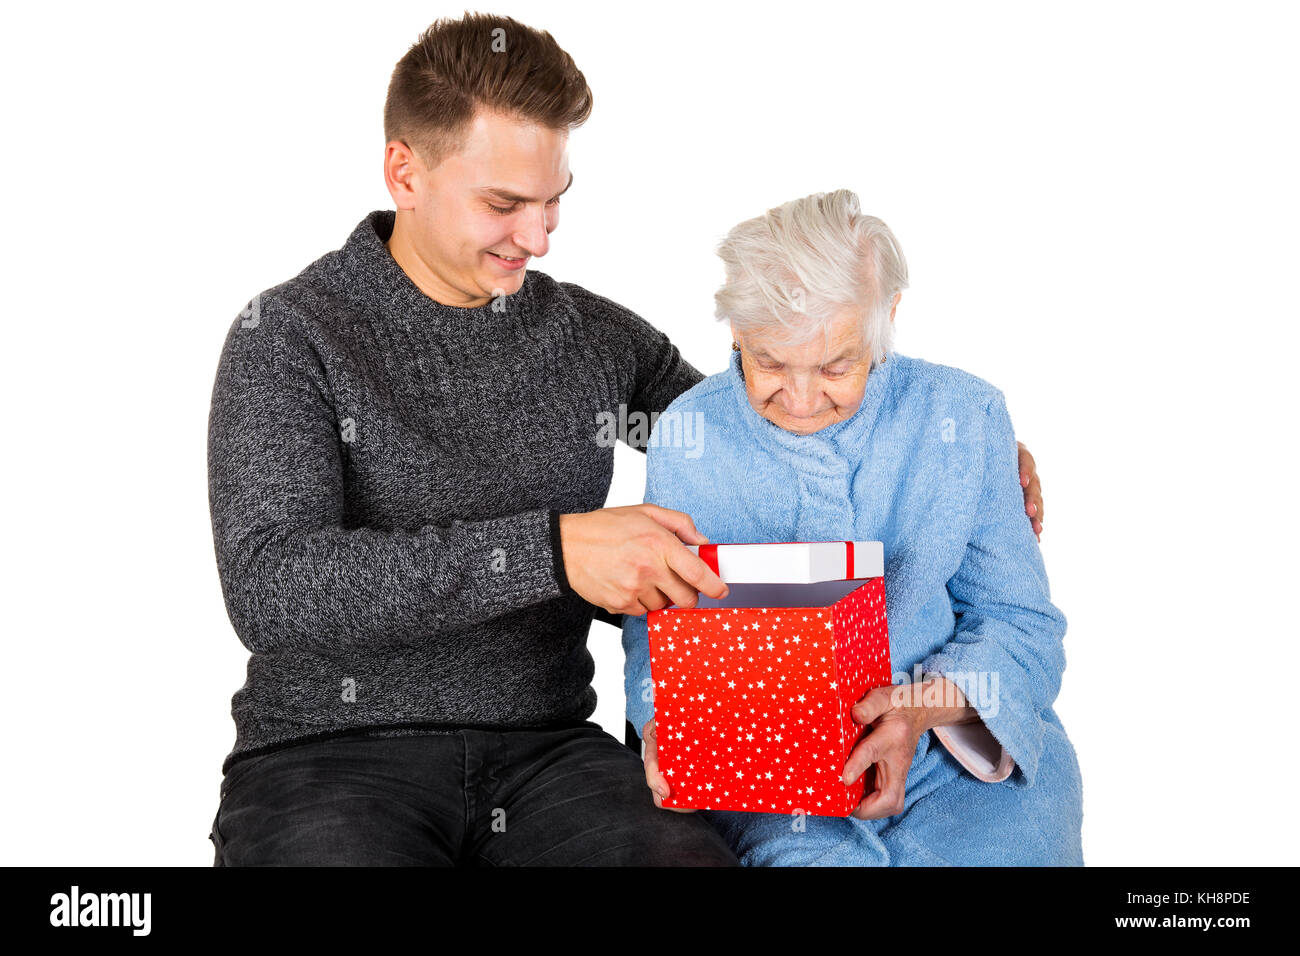 Picture Of An Old Lady Receiving Birthday Gifts From Her Grandson